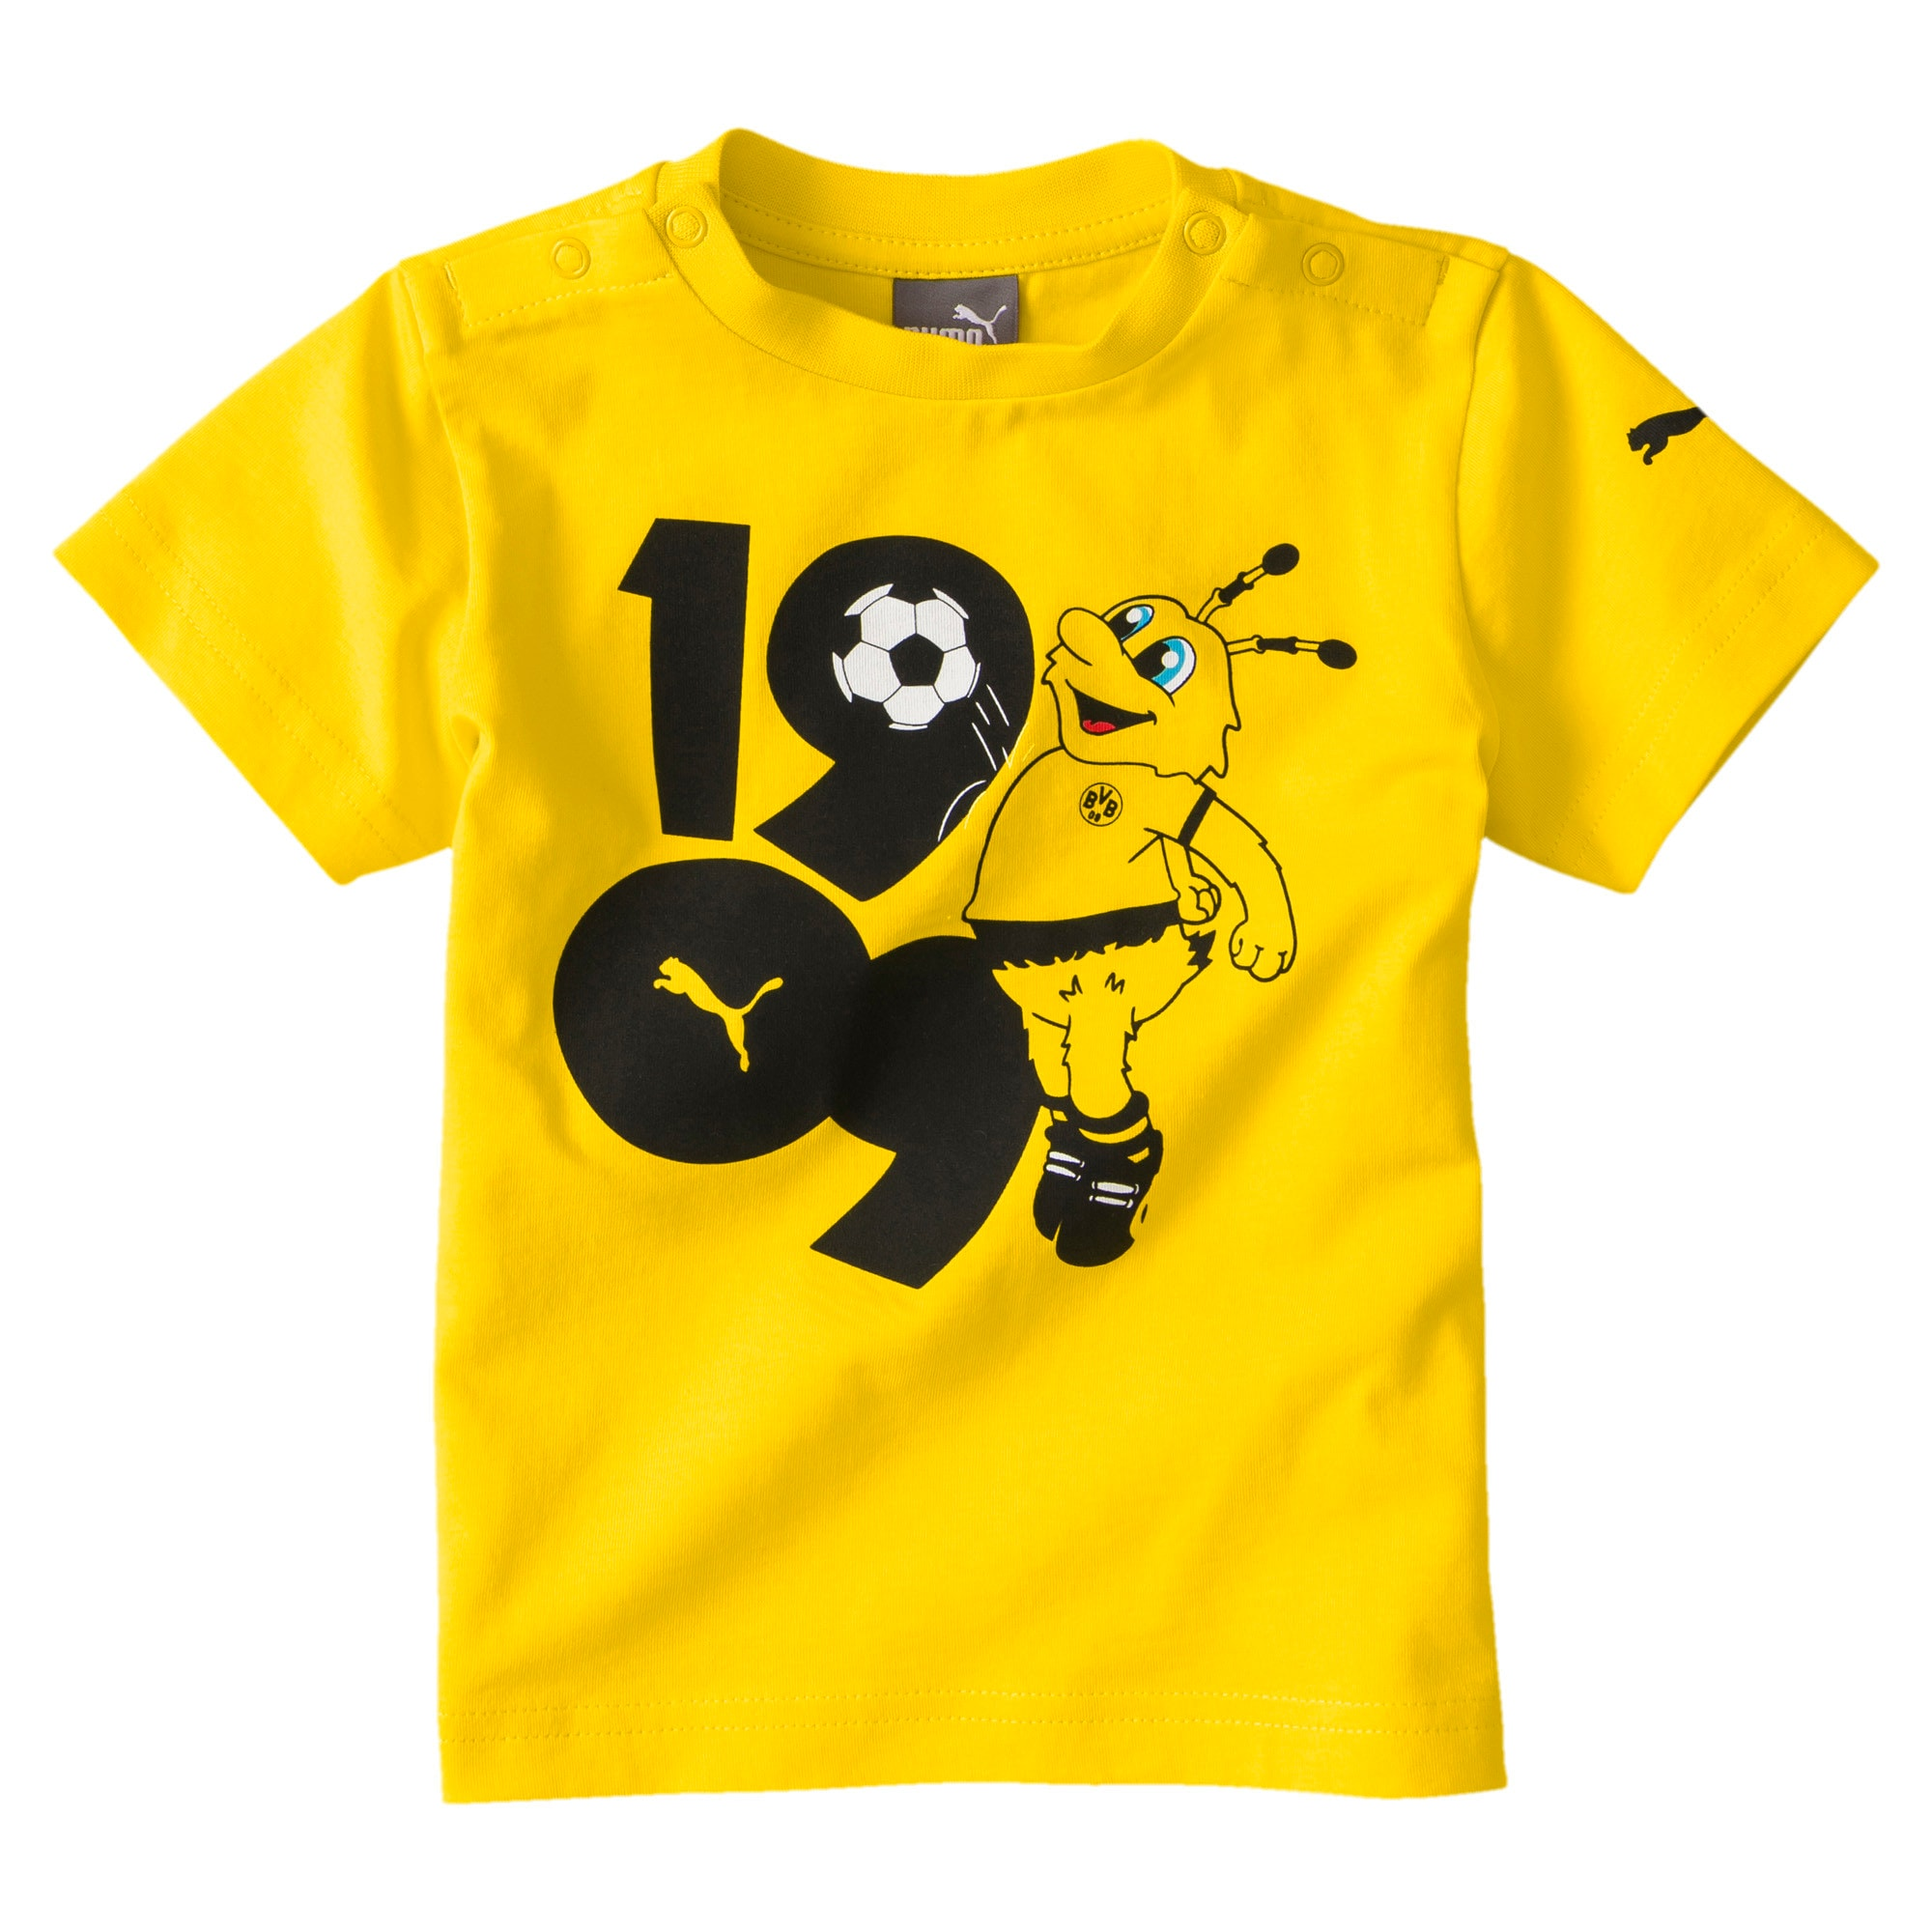 BVB Minicats Graphic Kids' Tee, Cyber Yellow, large